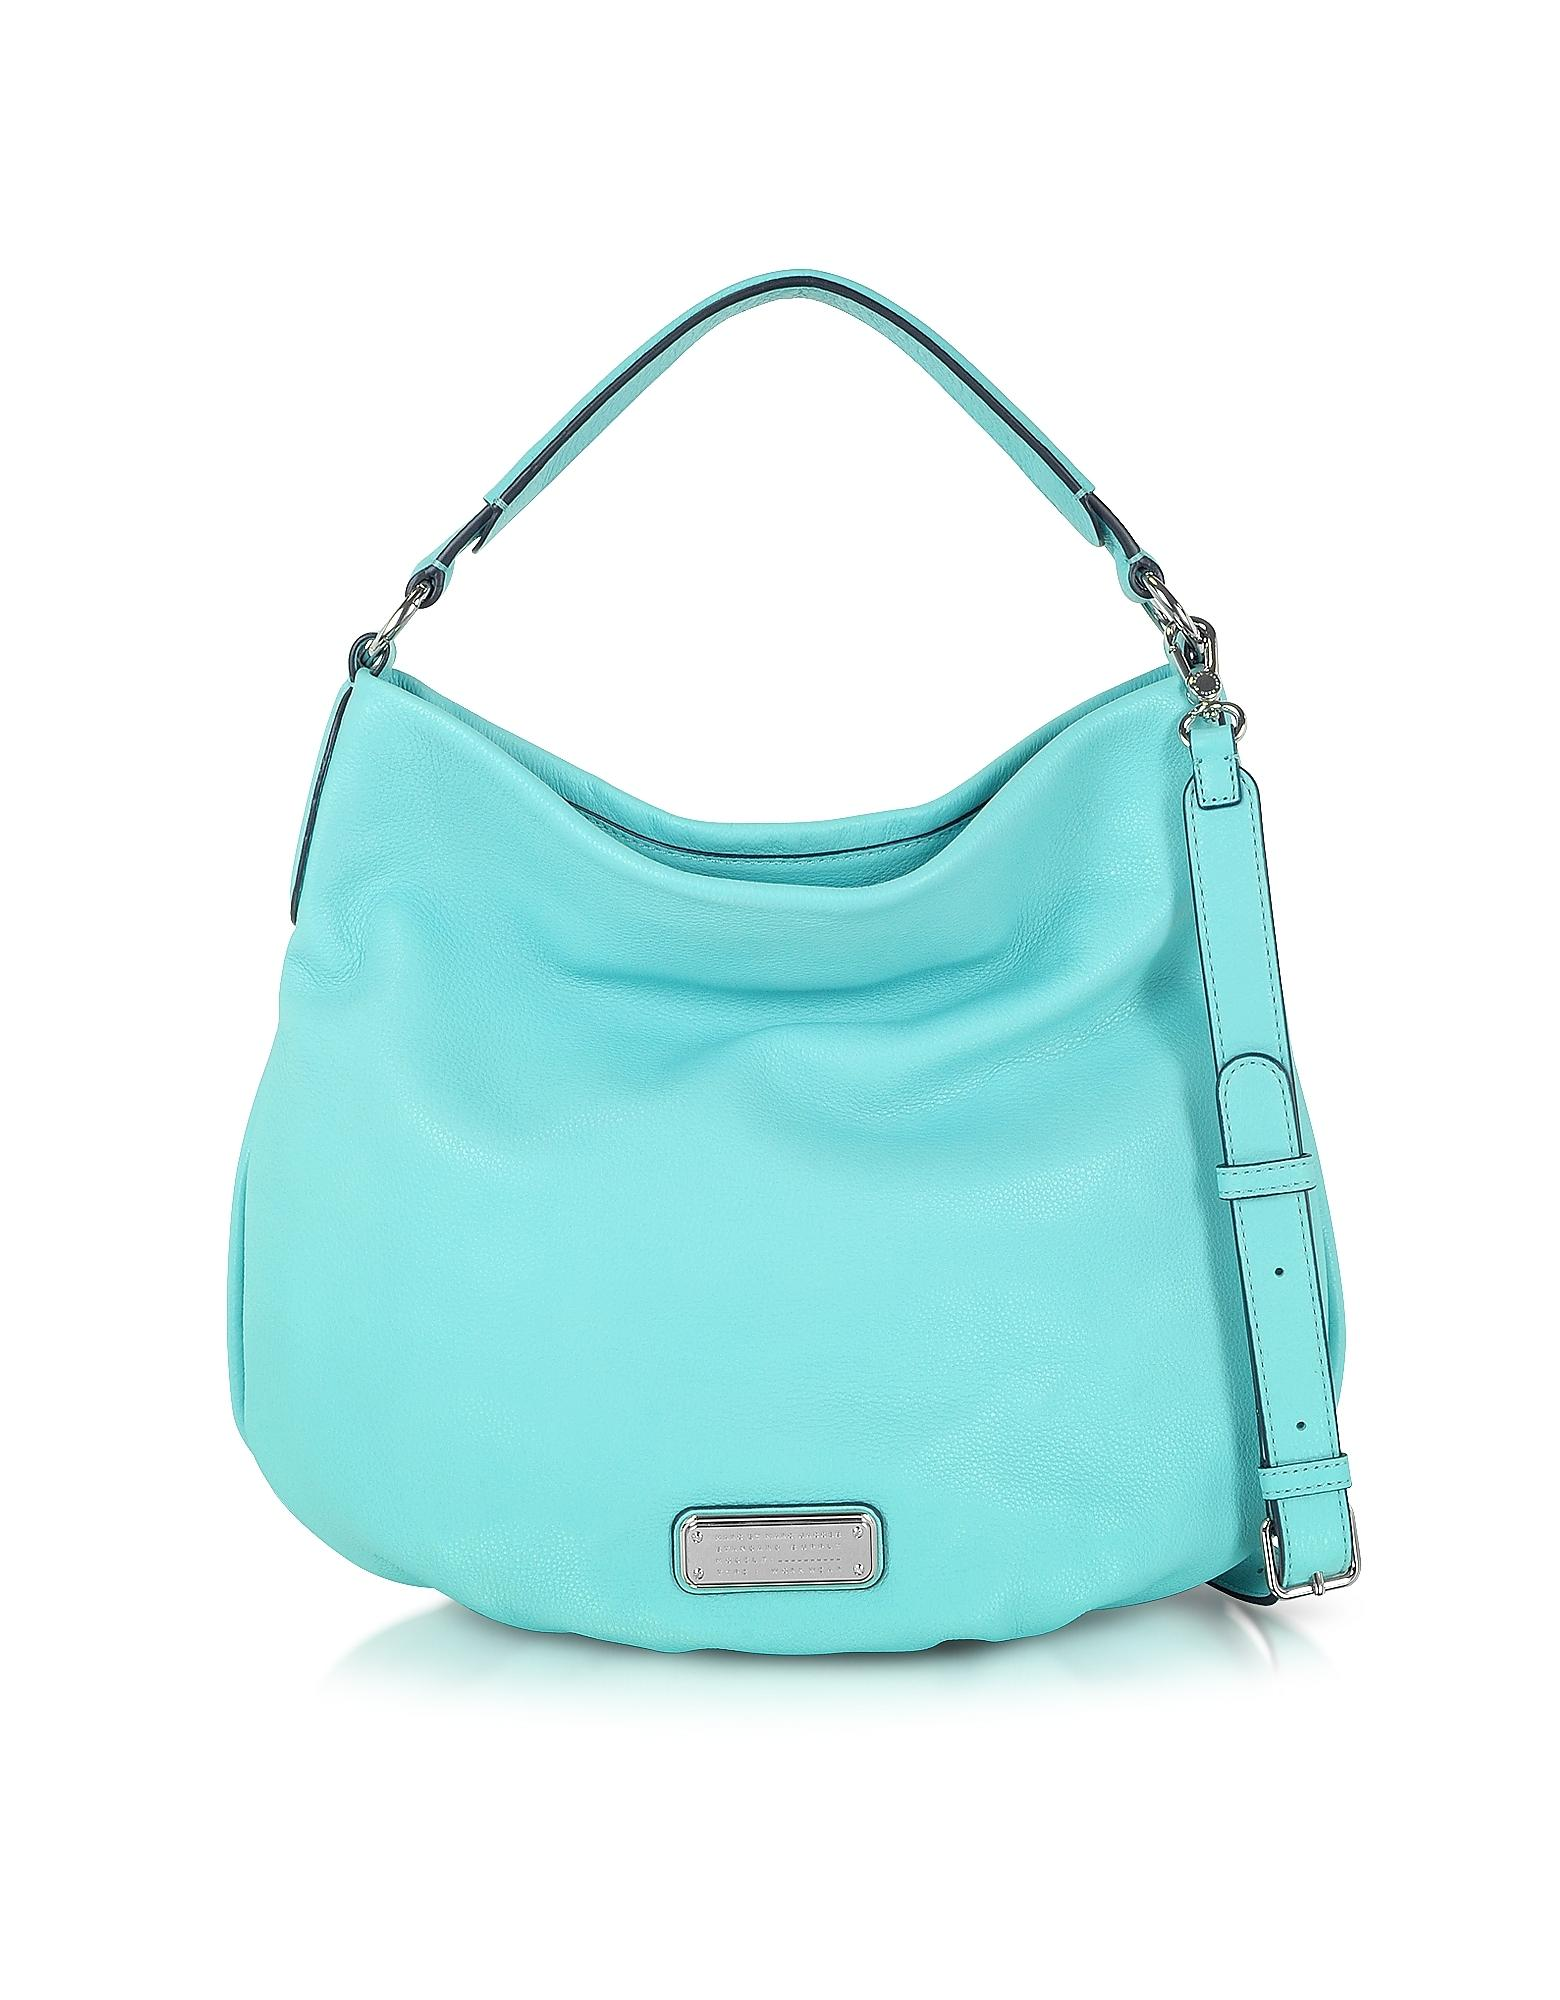 Aqua Leather Hobo Low Price Online Best Wholesale Sale Online Cheap Pictures Q5ex41bZo